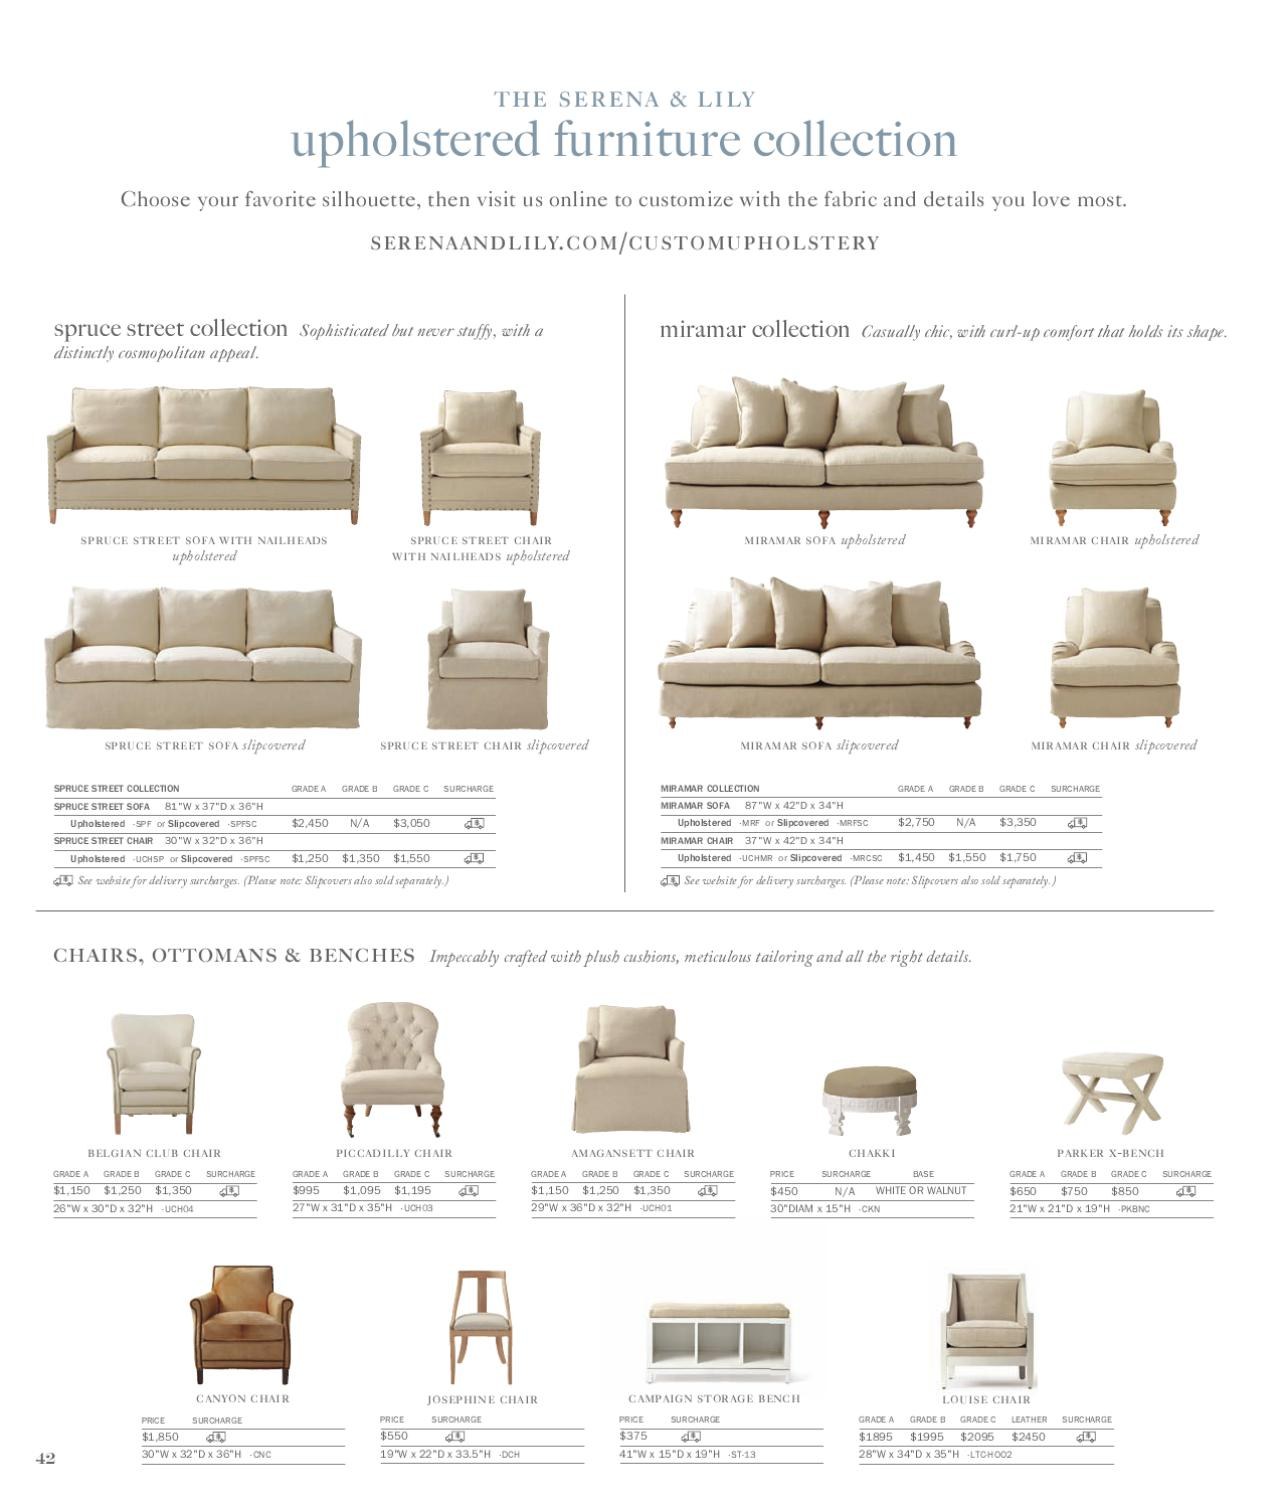 Tremendous Spring 2012 D2 Catalog By Lily Kanter Issuu Evergreenethics Interior Chair Design Evergreenethicsorg